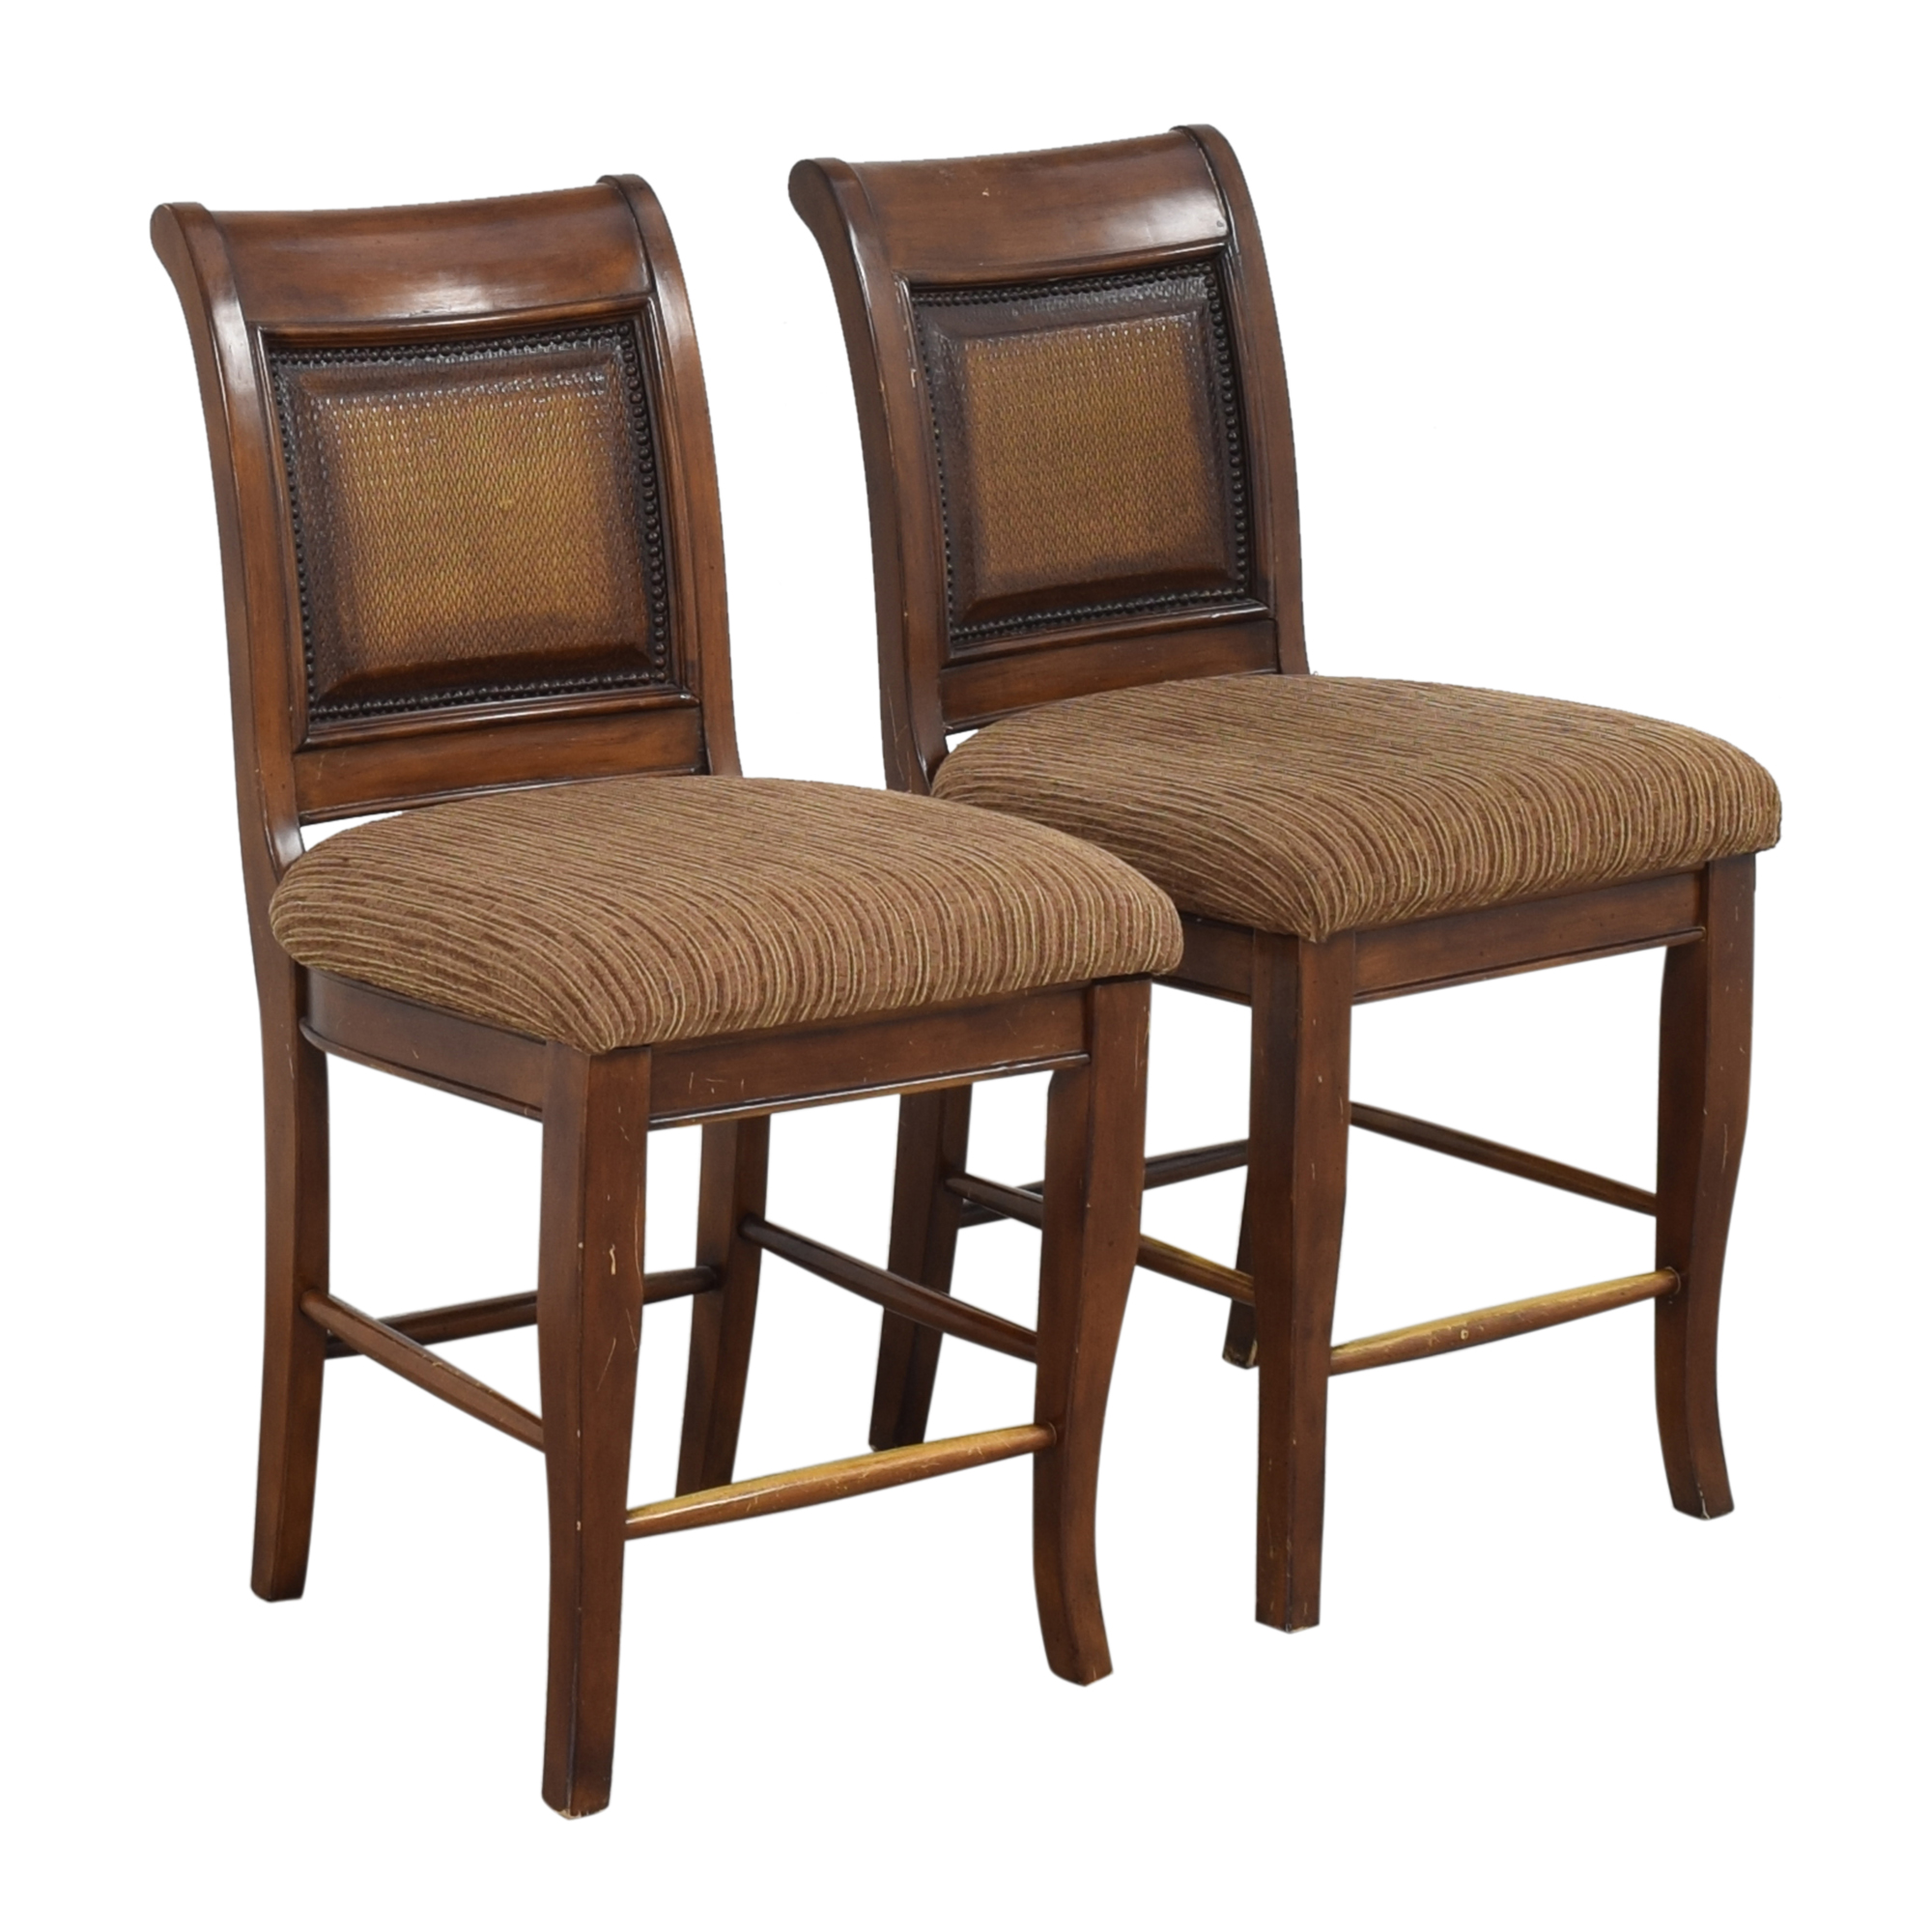 Ashley Furniture Ashley Furniture Counter Stools brown